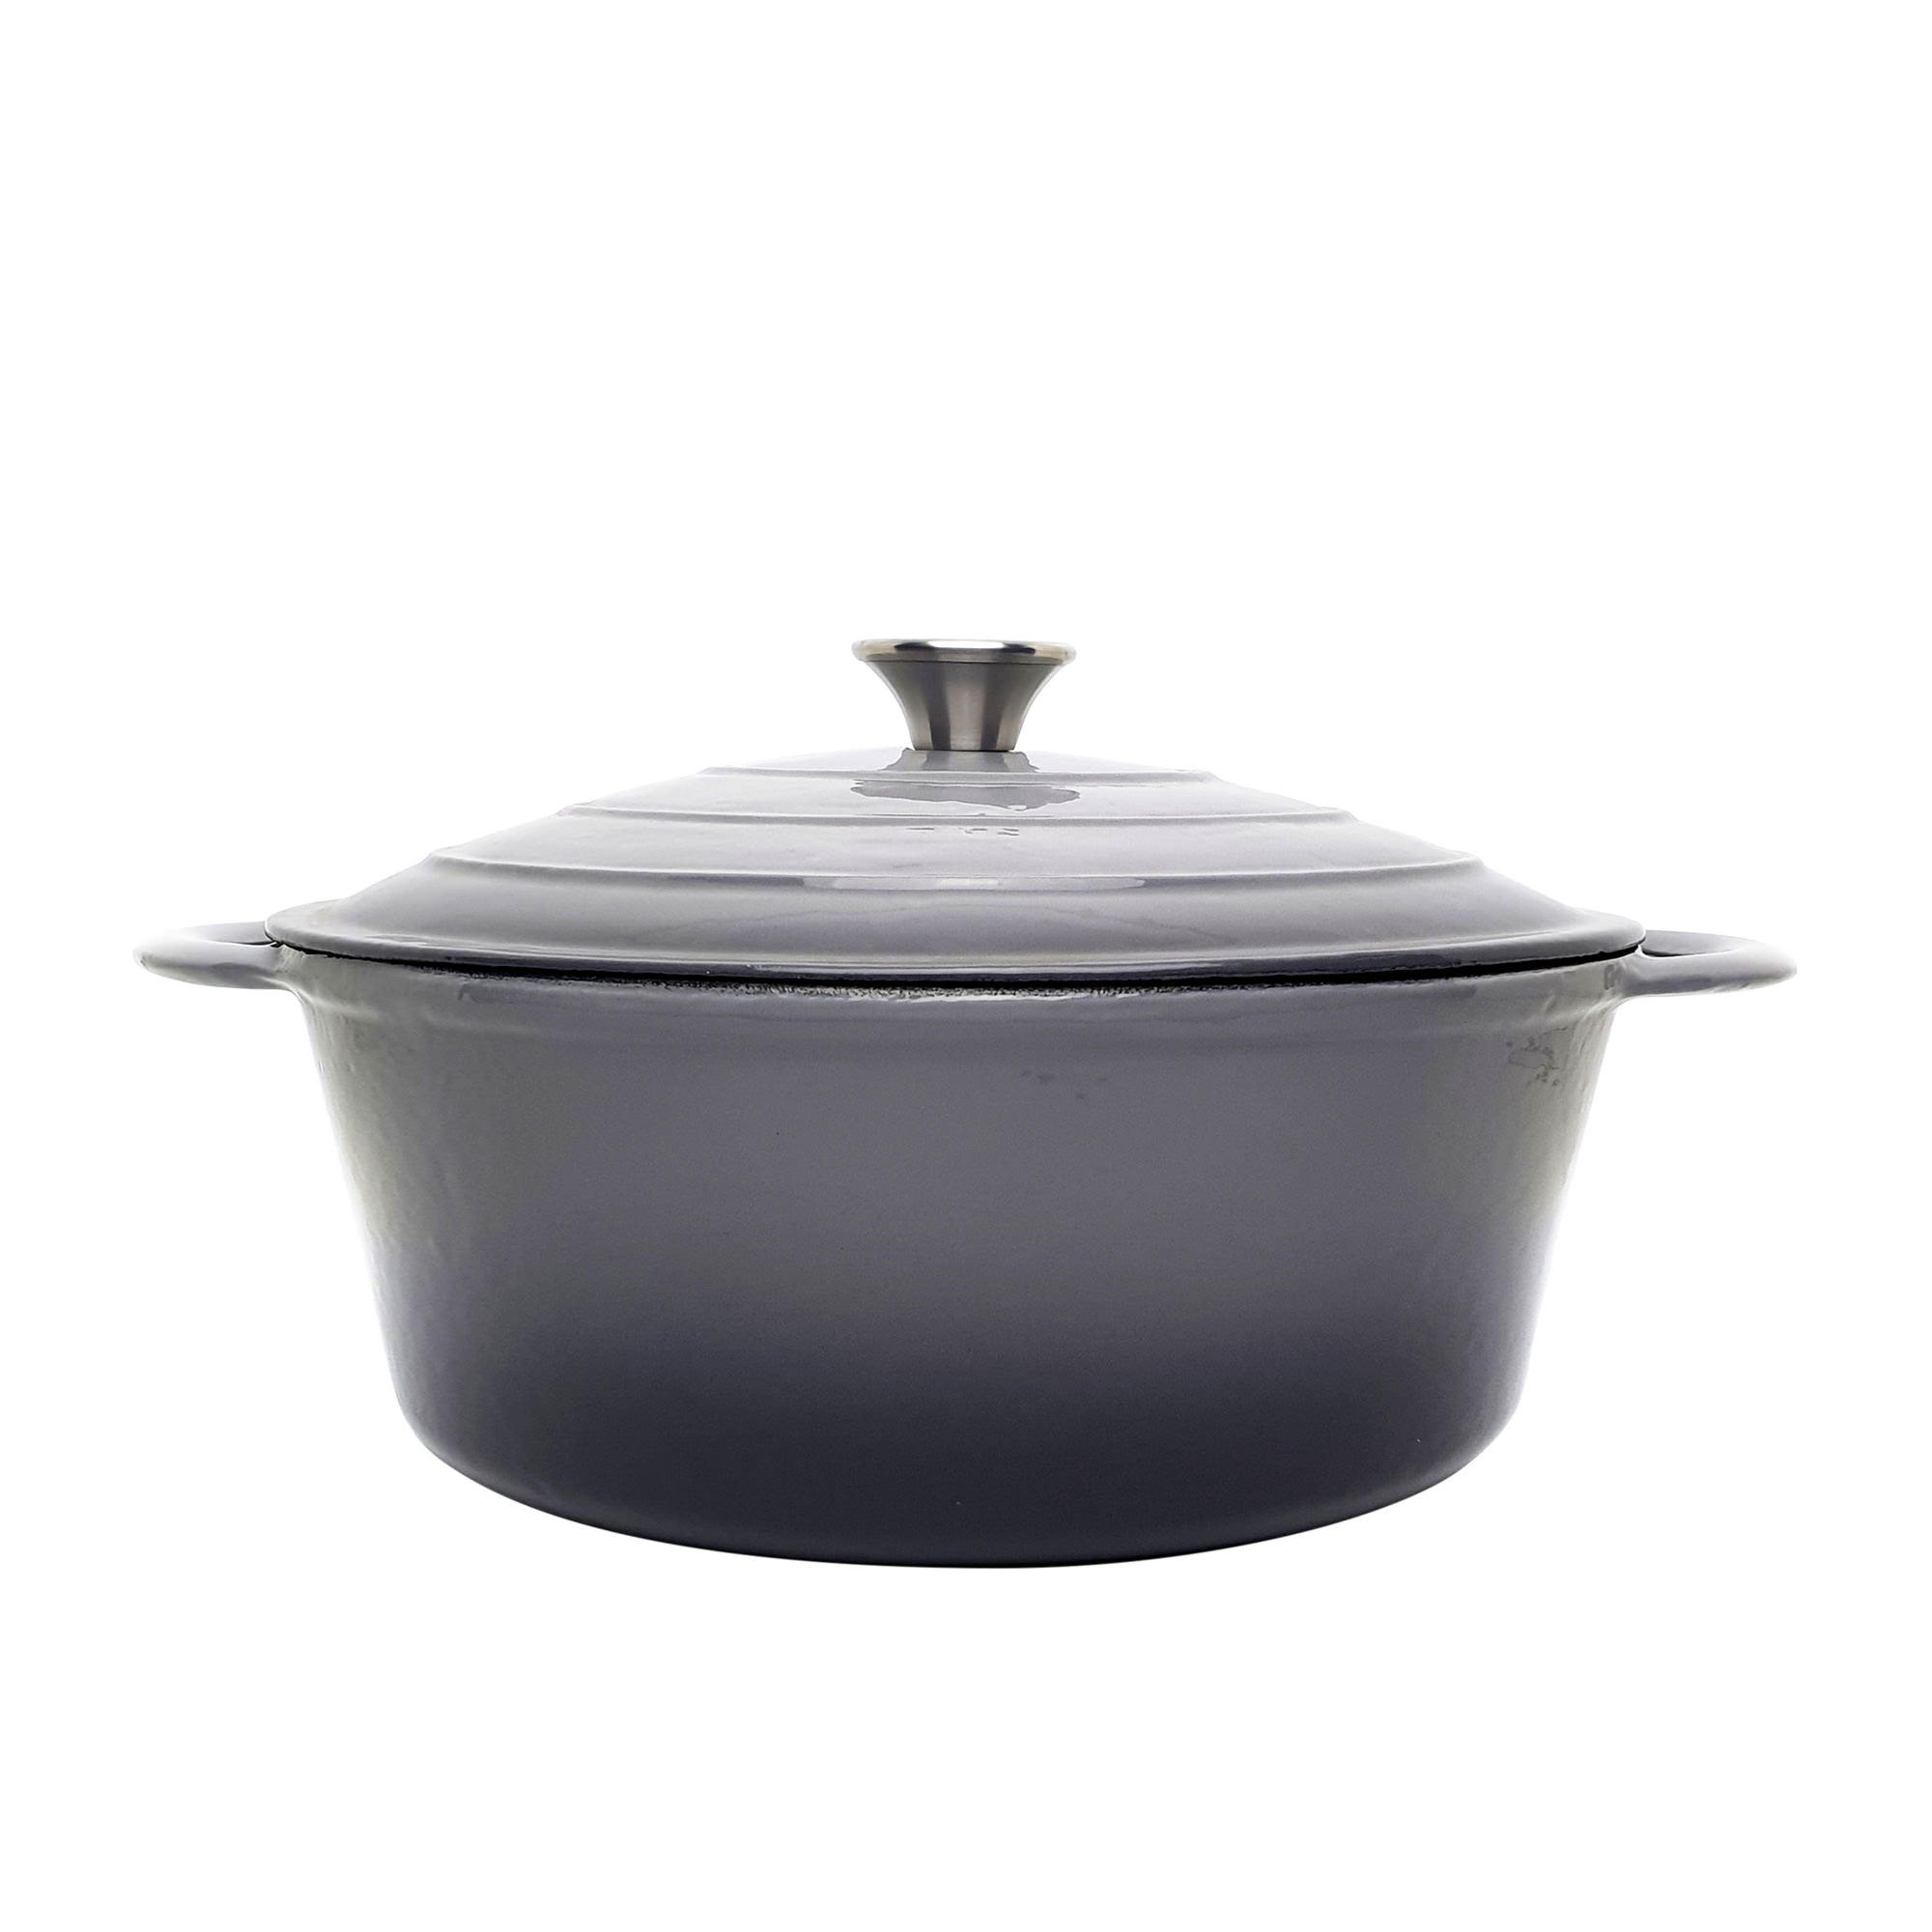 Classica Round Enamelled Cast Iron Dutch Oven 28cm - 6.6L Grey